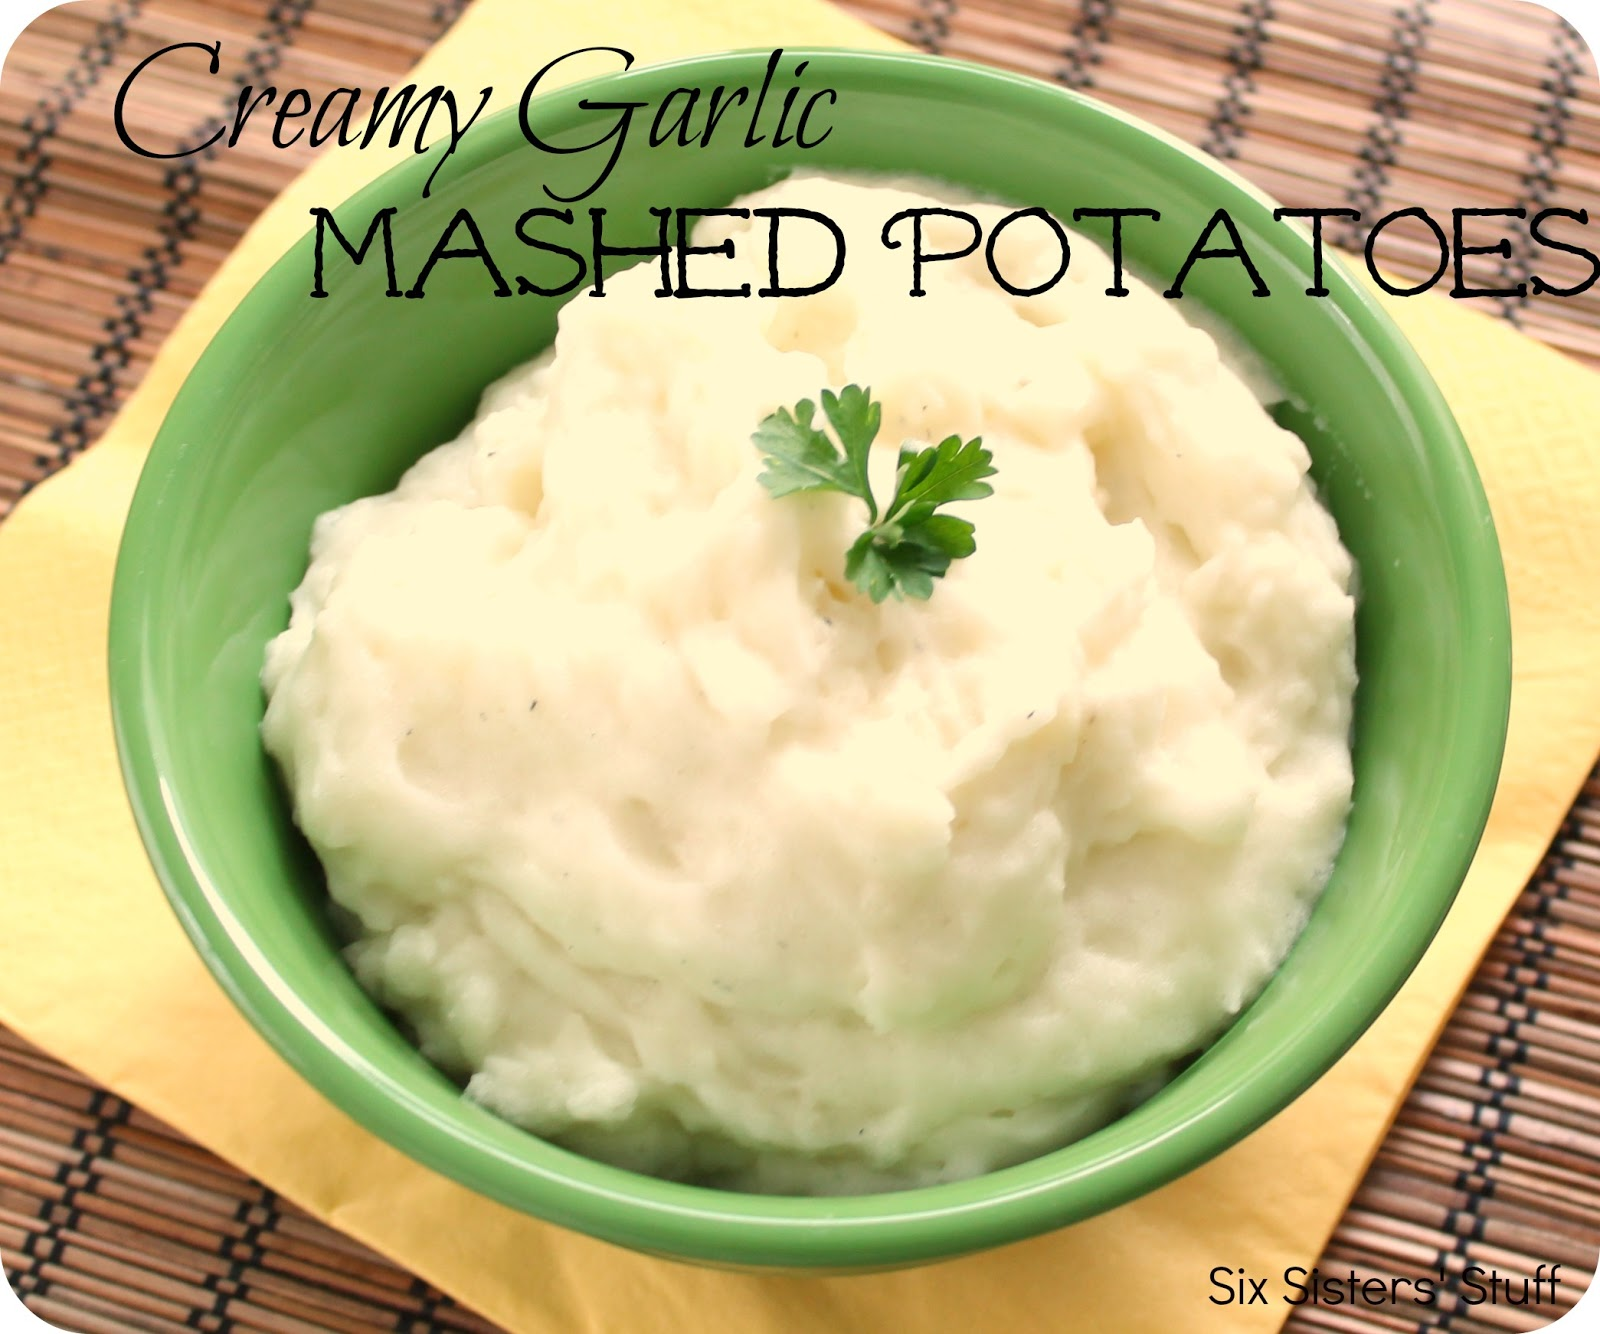 Creamy Garlic Mashed Potatoes | Six Sisters' Stuff